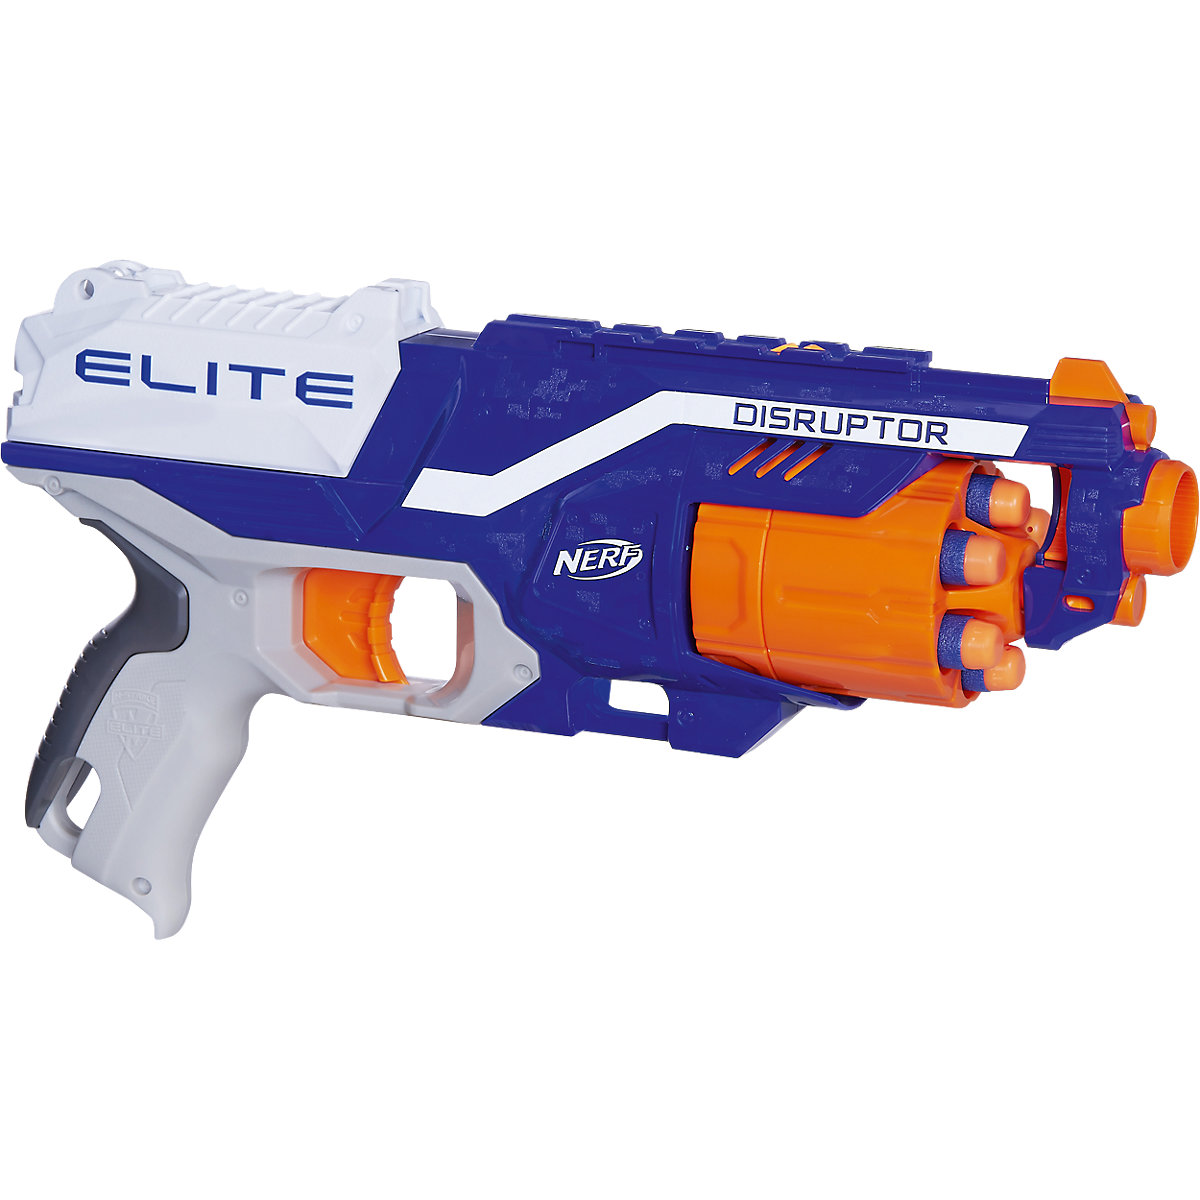 Toy Guns NERF 5104315 Children Kids Toy Gun Weapon Blasters Boys Shooting games Outdoor play toy guns nerf 3550830 children kids toy gun weapon blasters boys shooting games outdoor play